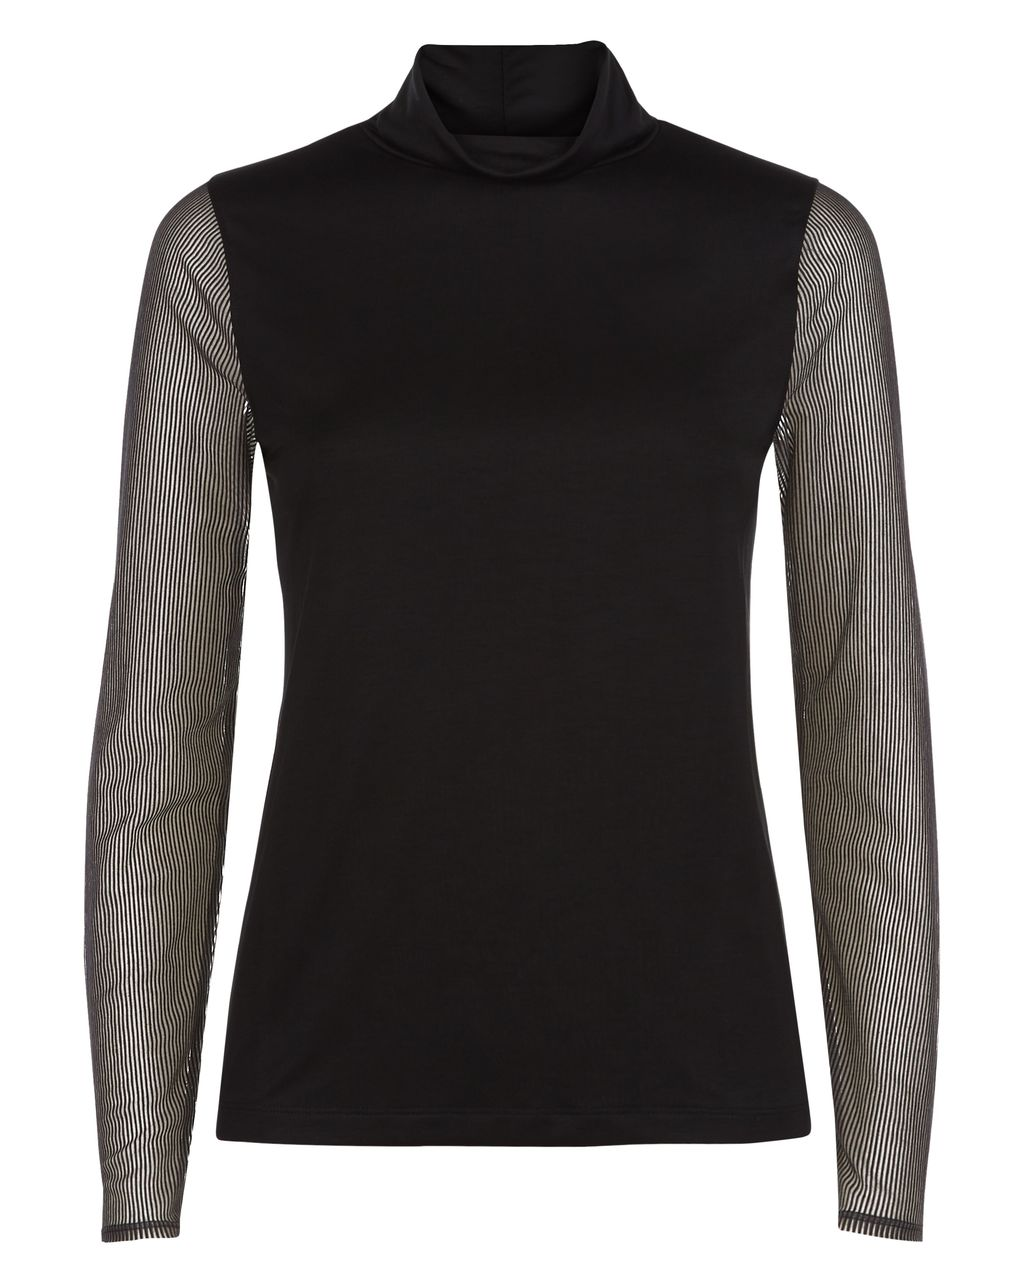 Sheer Striped Sleeved Top, Black - pattern: plain; neckline: roll neck; predominant colour: black; occasions: casual, creative work; length: standard; style: top; fibres: cotton - mix; fit: body skimming; sleeve length: long sleeve; sleeve style: standard; texture group: sheer fabrics/chiffon/organza etc.; pattern type: fabric; season: a/w 2016